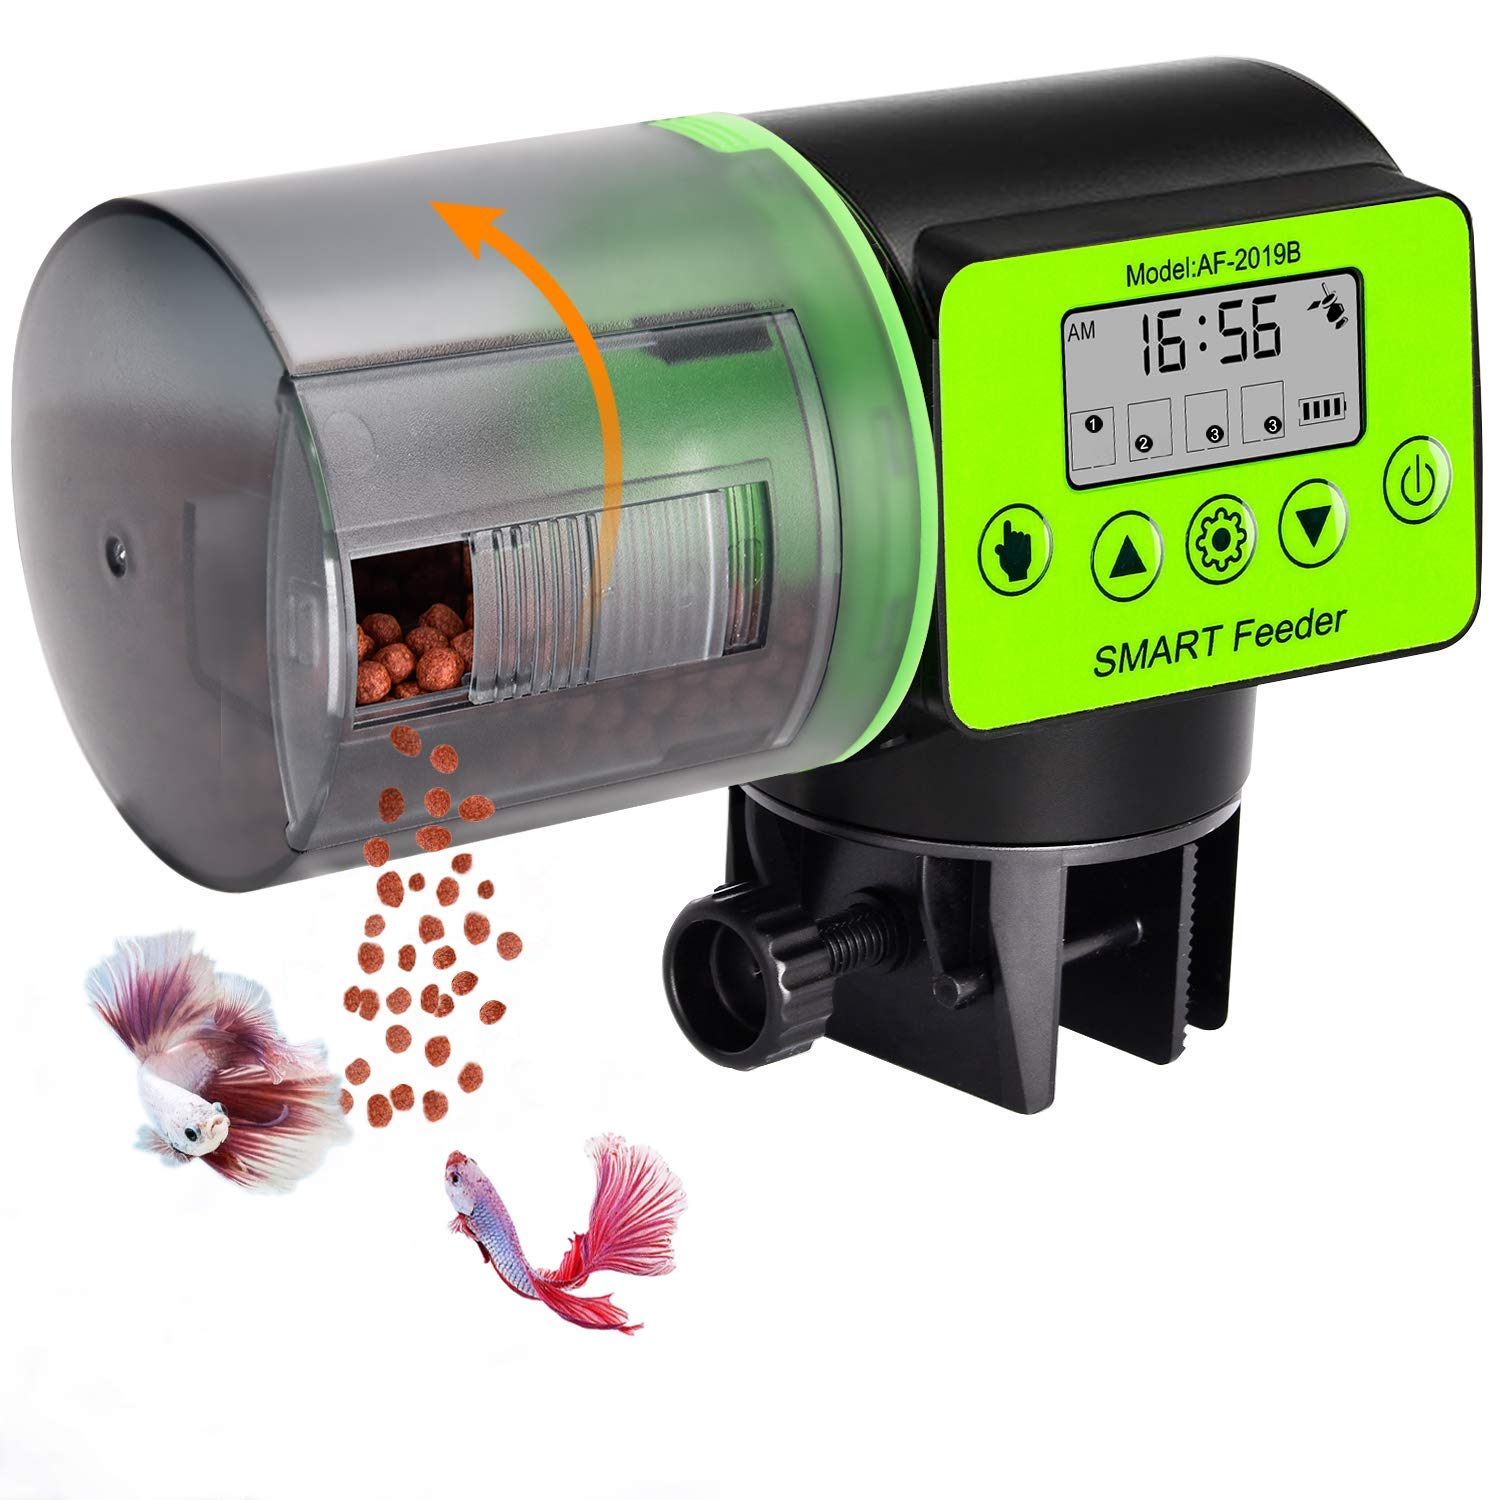 Automatic Fish Feeder Auto Fish Food Dispenser Aquarium Tank Weekend Vacation Directional Fish Feeder with Timer…